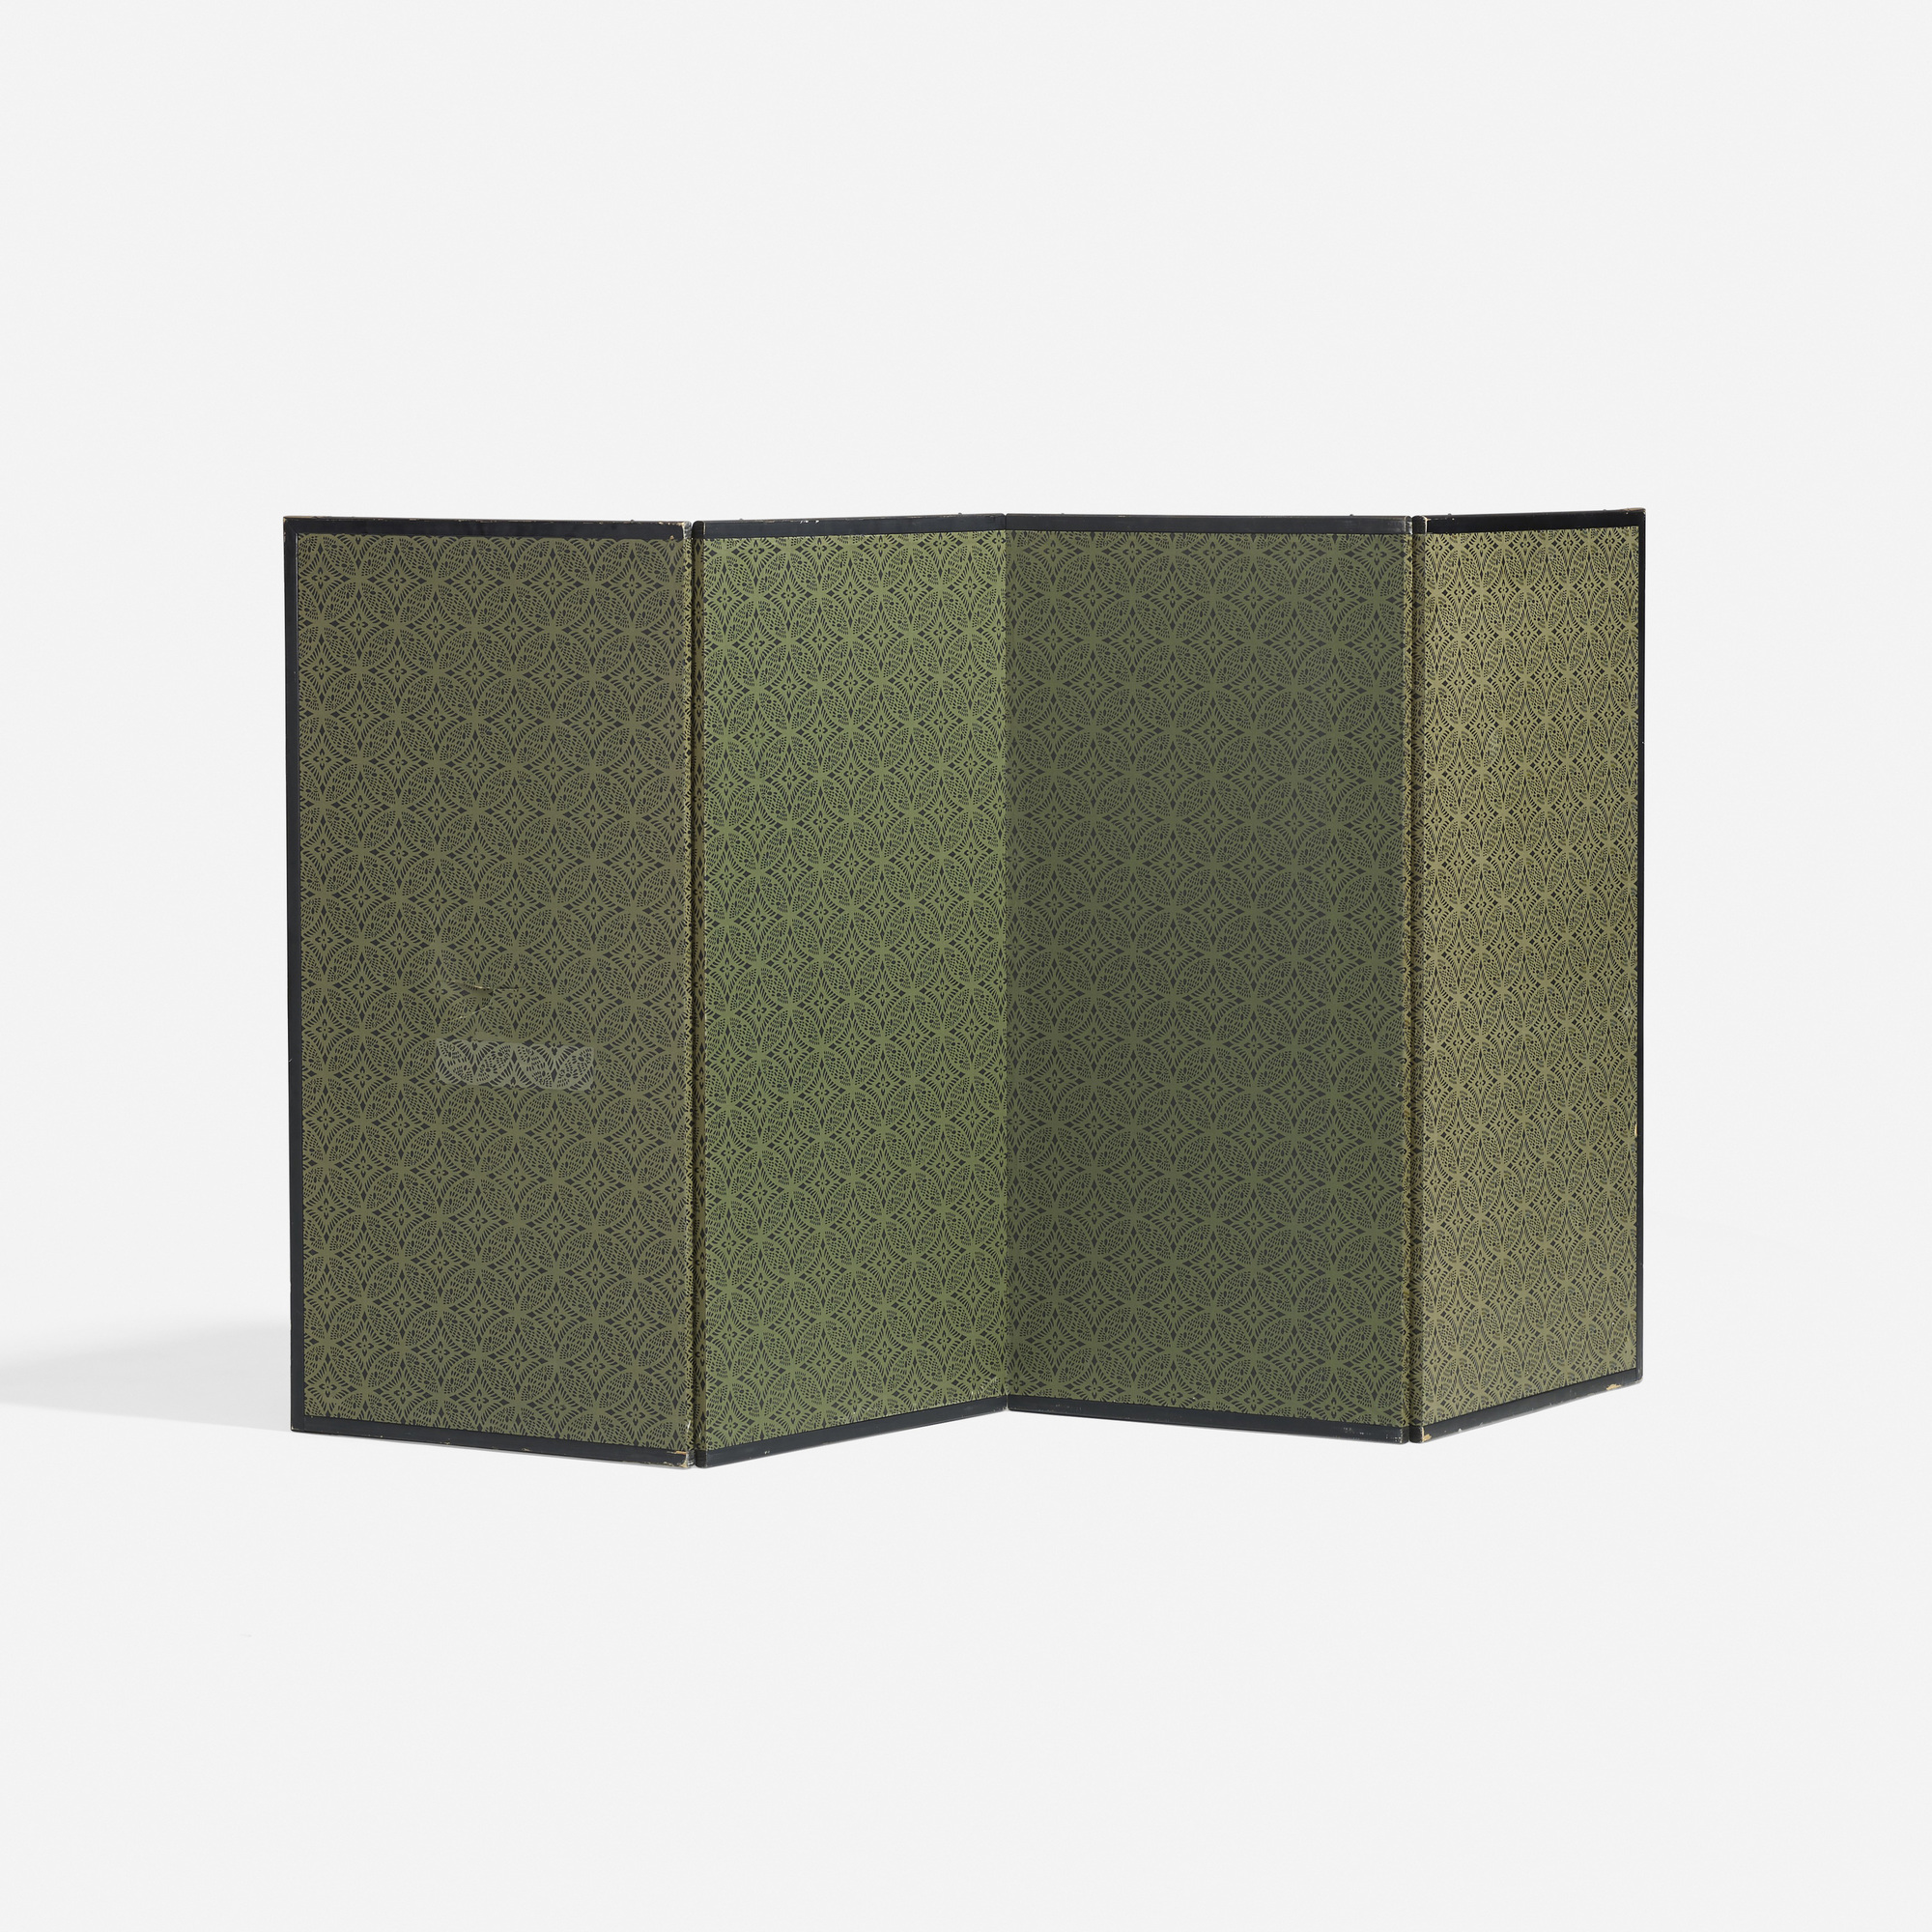 241: Japanese / folding screen (2 of 3)